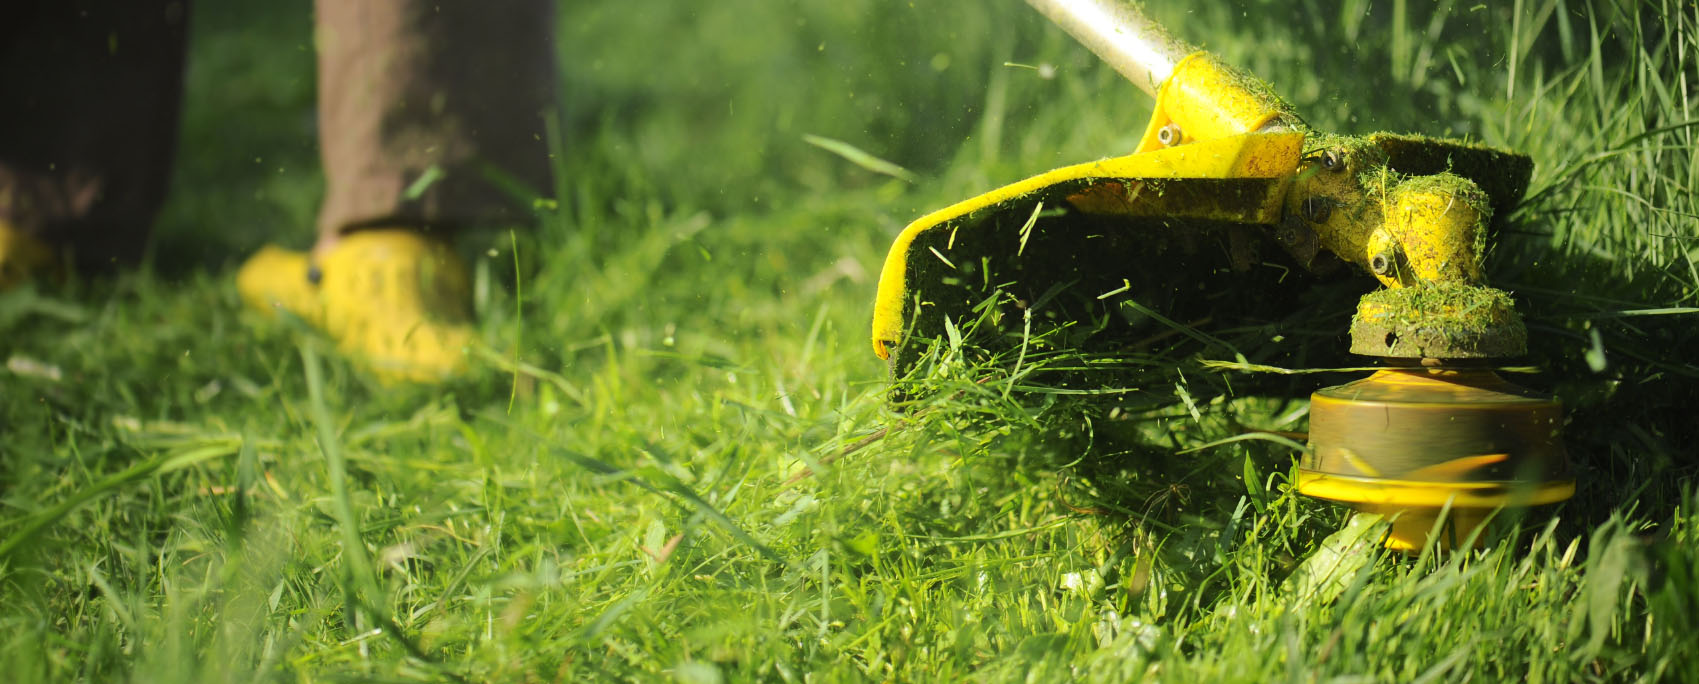 Commercial landscape maintenance in college station round for General garden maintenance